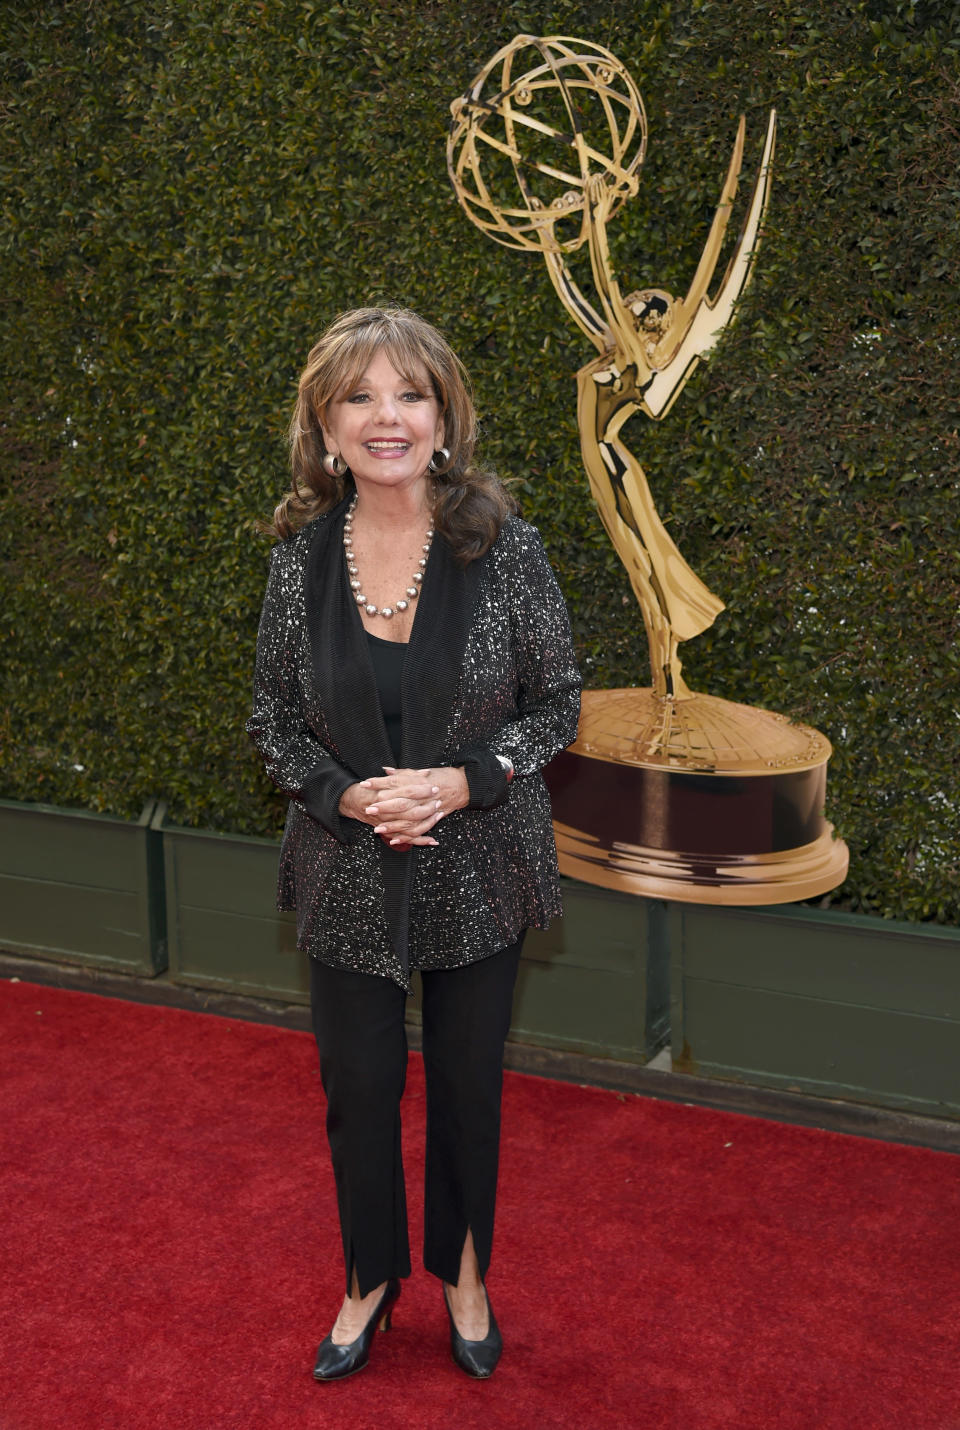 "FILE - In this April 29, 2016 file photo, Dawn Wells arrives at the Daytime Creative Arts Emmy Awards at the Westin Bonaventure Hotel in Los Angeles. Wells, who played the wholesome Mary Ann among a misfit band of shipwrecked castaways on the 1960s sitcom ""Gilligan's Island, died Wednesday, Dec. 30, 2020, of causes related to COVID-19, her publicist said. (Photo by Chris Pizzello/Invision/AP)"